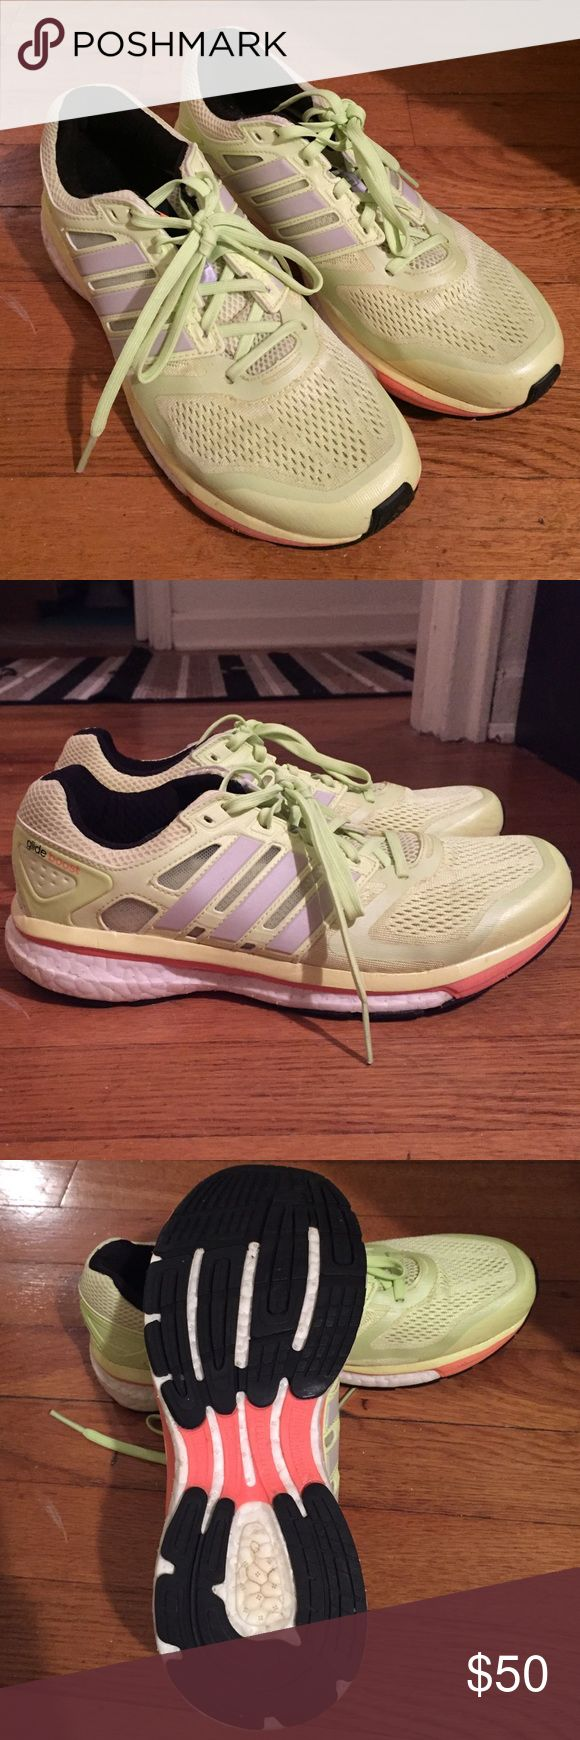 • ADIDAS • supernova boost Adidas supernova boost. Women's size 8.5. BRAND NEW! Worn once!!! Too big for me! Adidas Shoes Sneakers